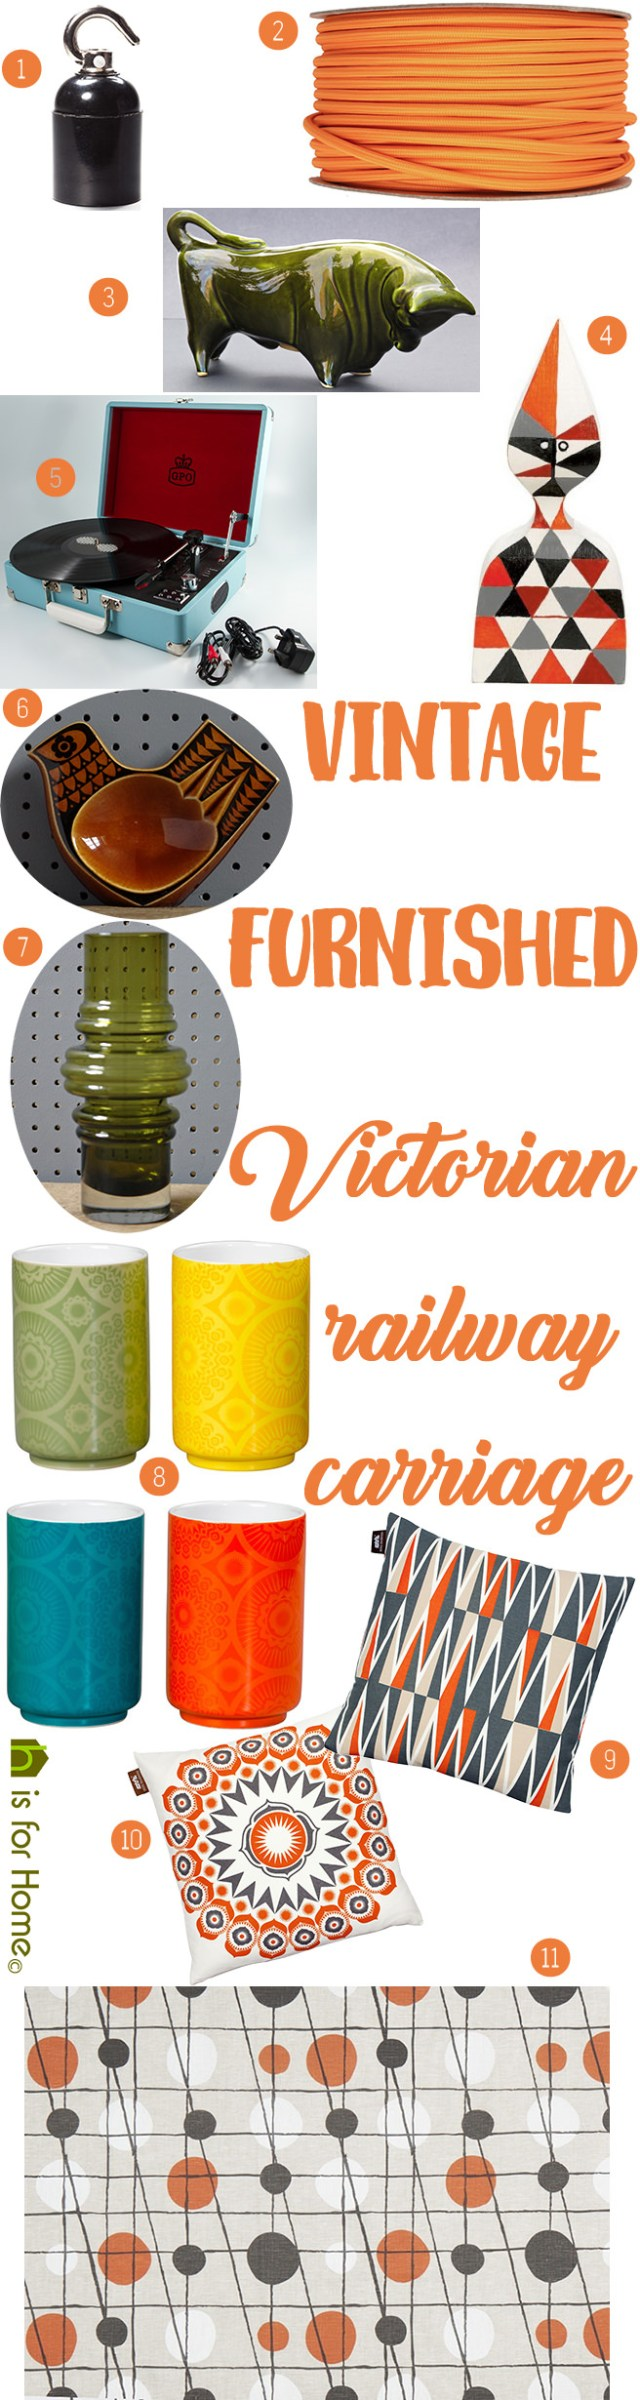 Get their look: Vintage furnished Victorian railway carriage | H is for Home